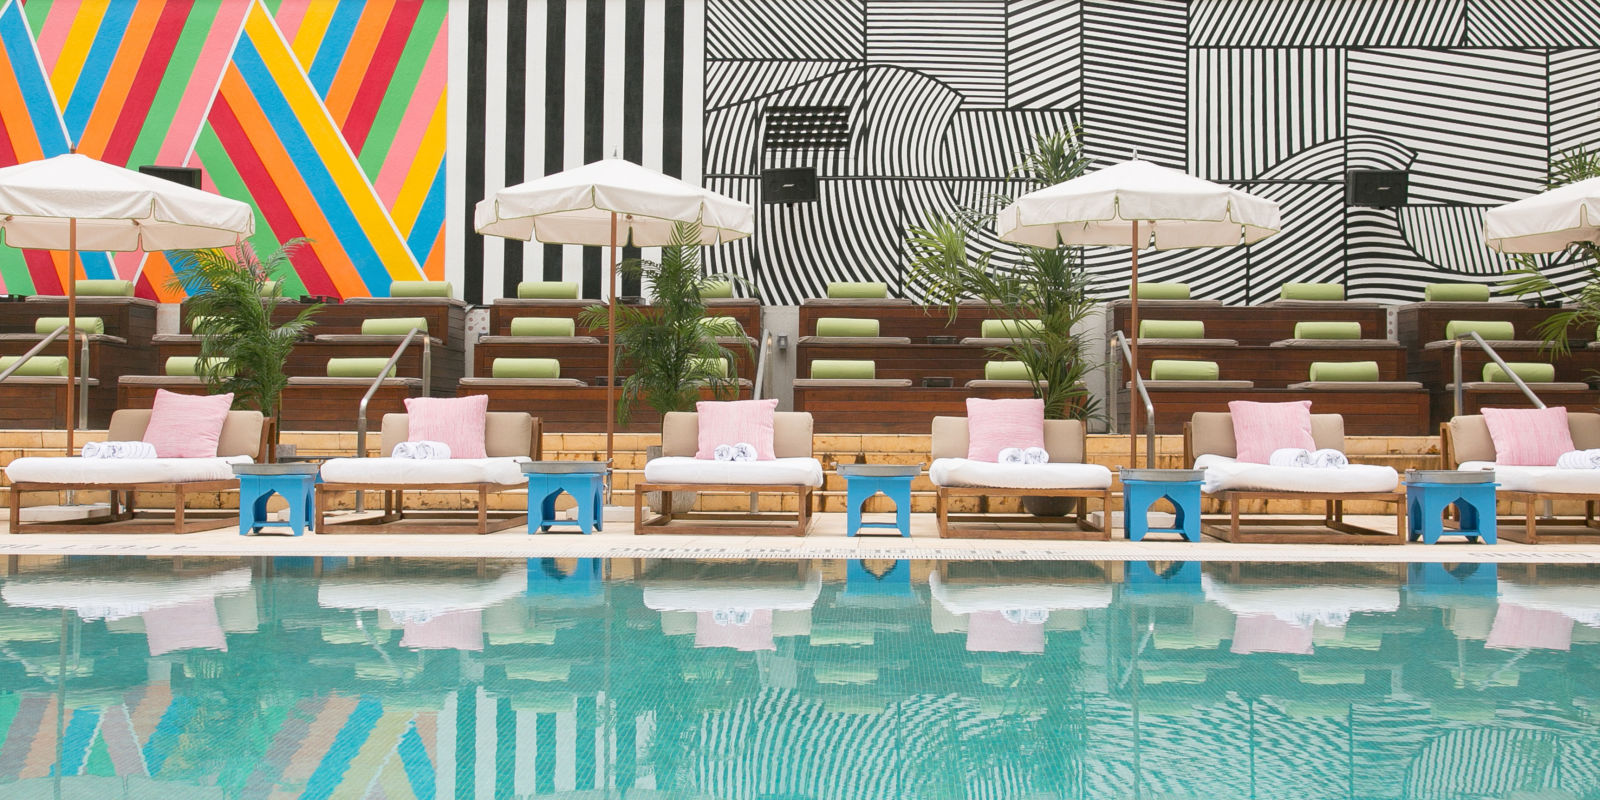 9 Best Hotels With Pools In Nyc New York Hotels With Indoor Swimming Pools To Visit In 2018